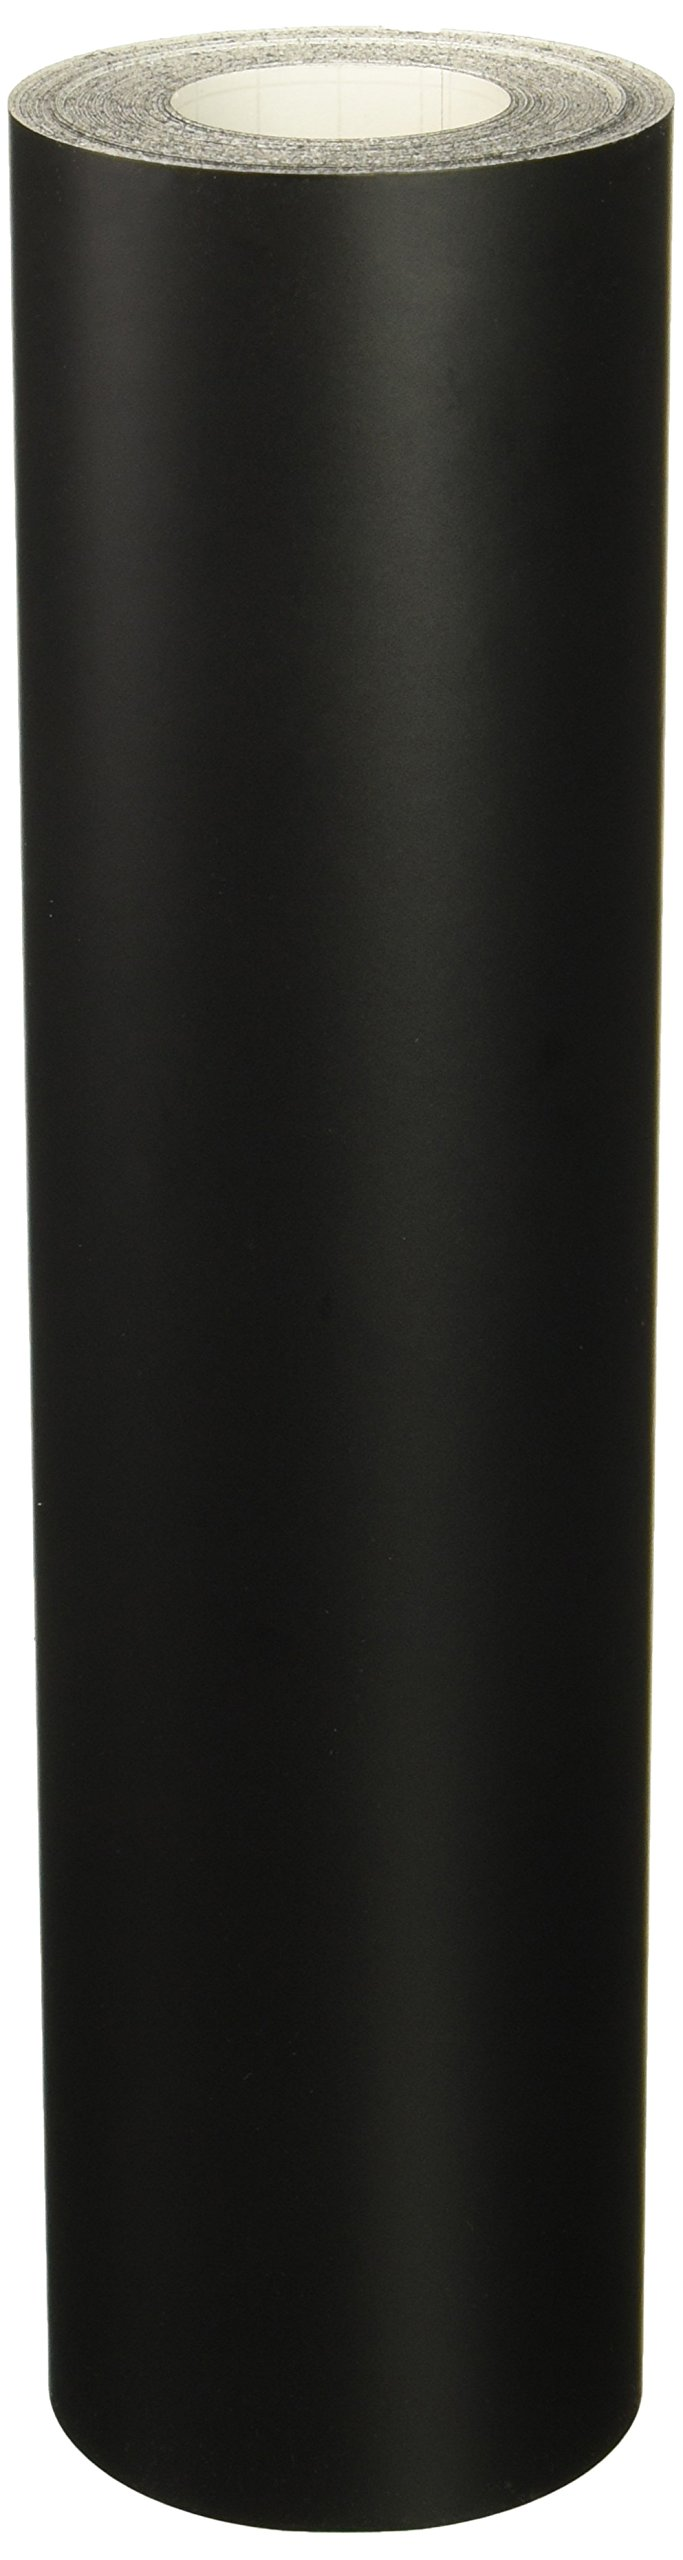 Roll of Oracal 651 Matte Black Vinyl for Craft Cutters and Vinyl Sign Cutters (12'' x50FT)